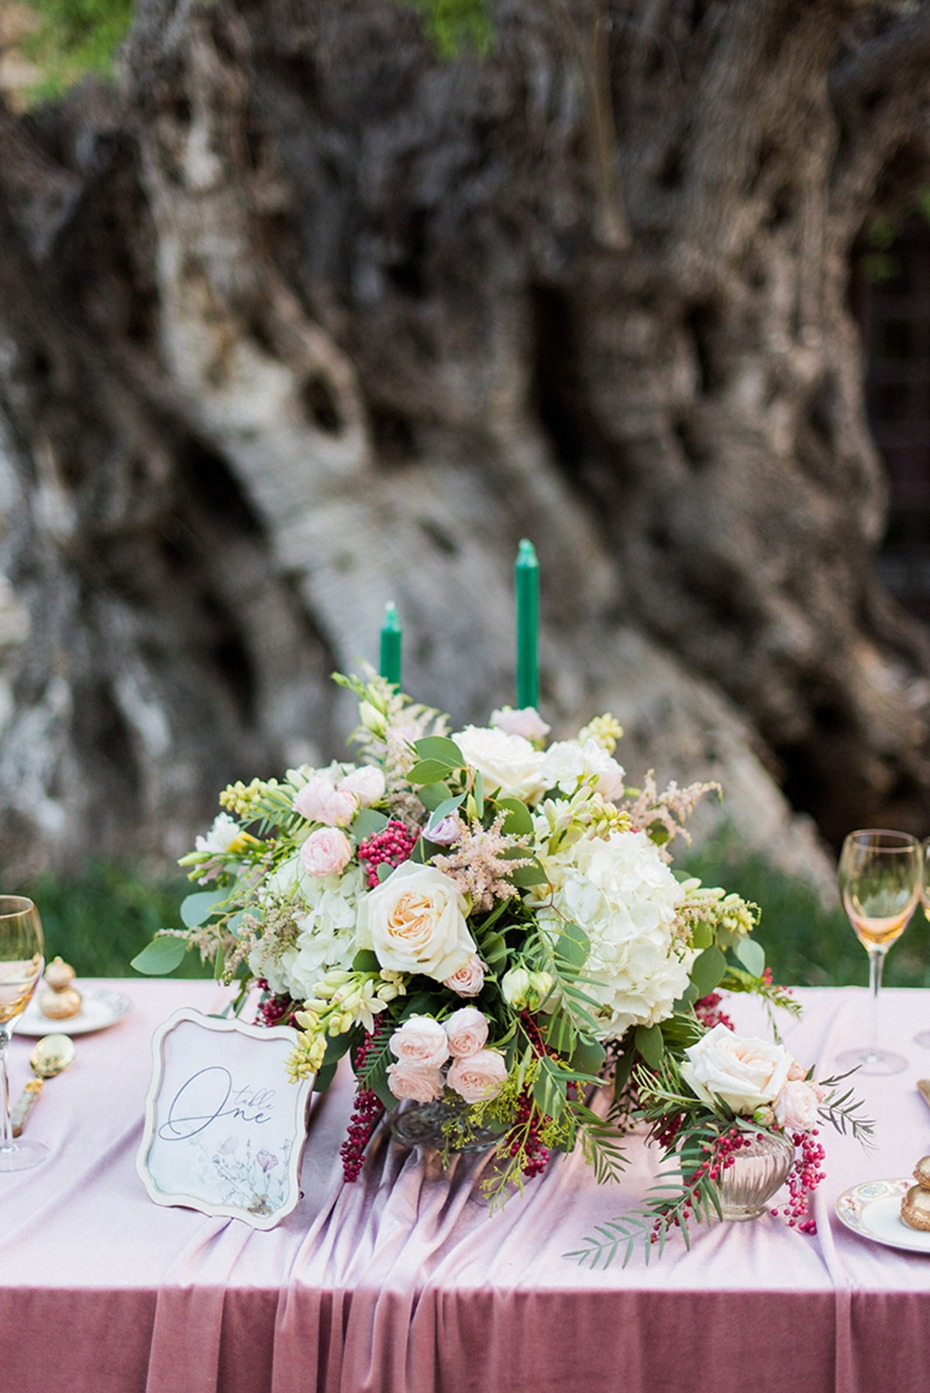 wedding centerpiece idea for your soft pink and emerald green decor